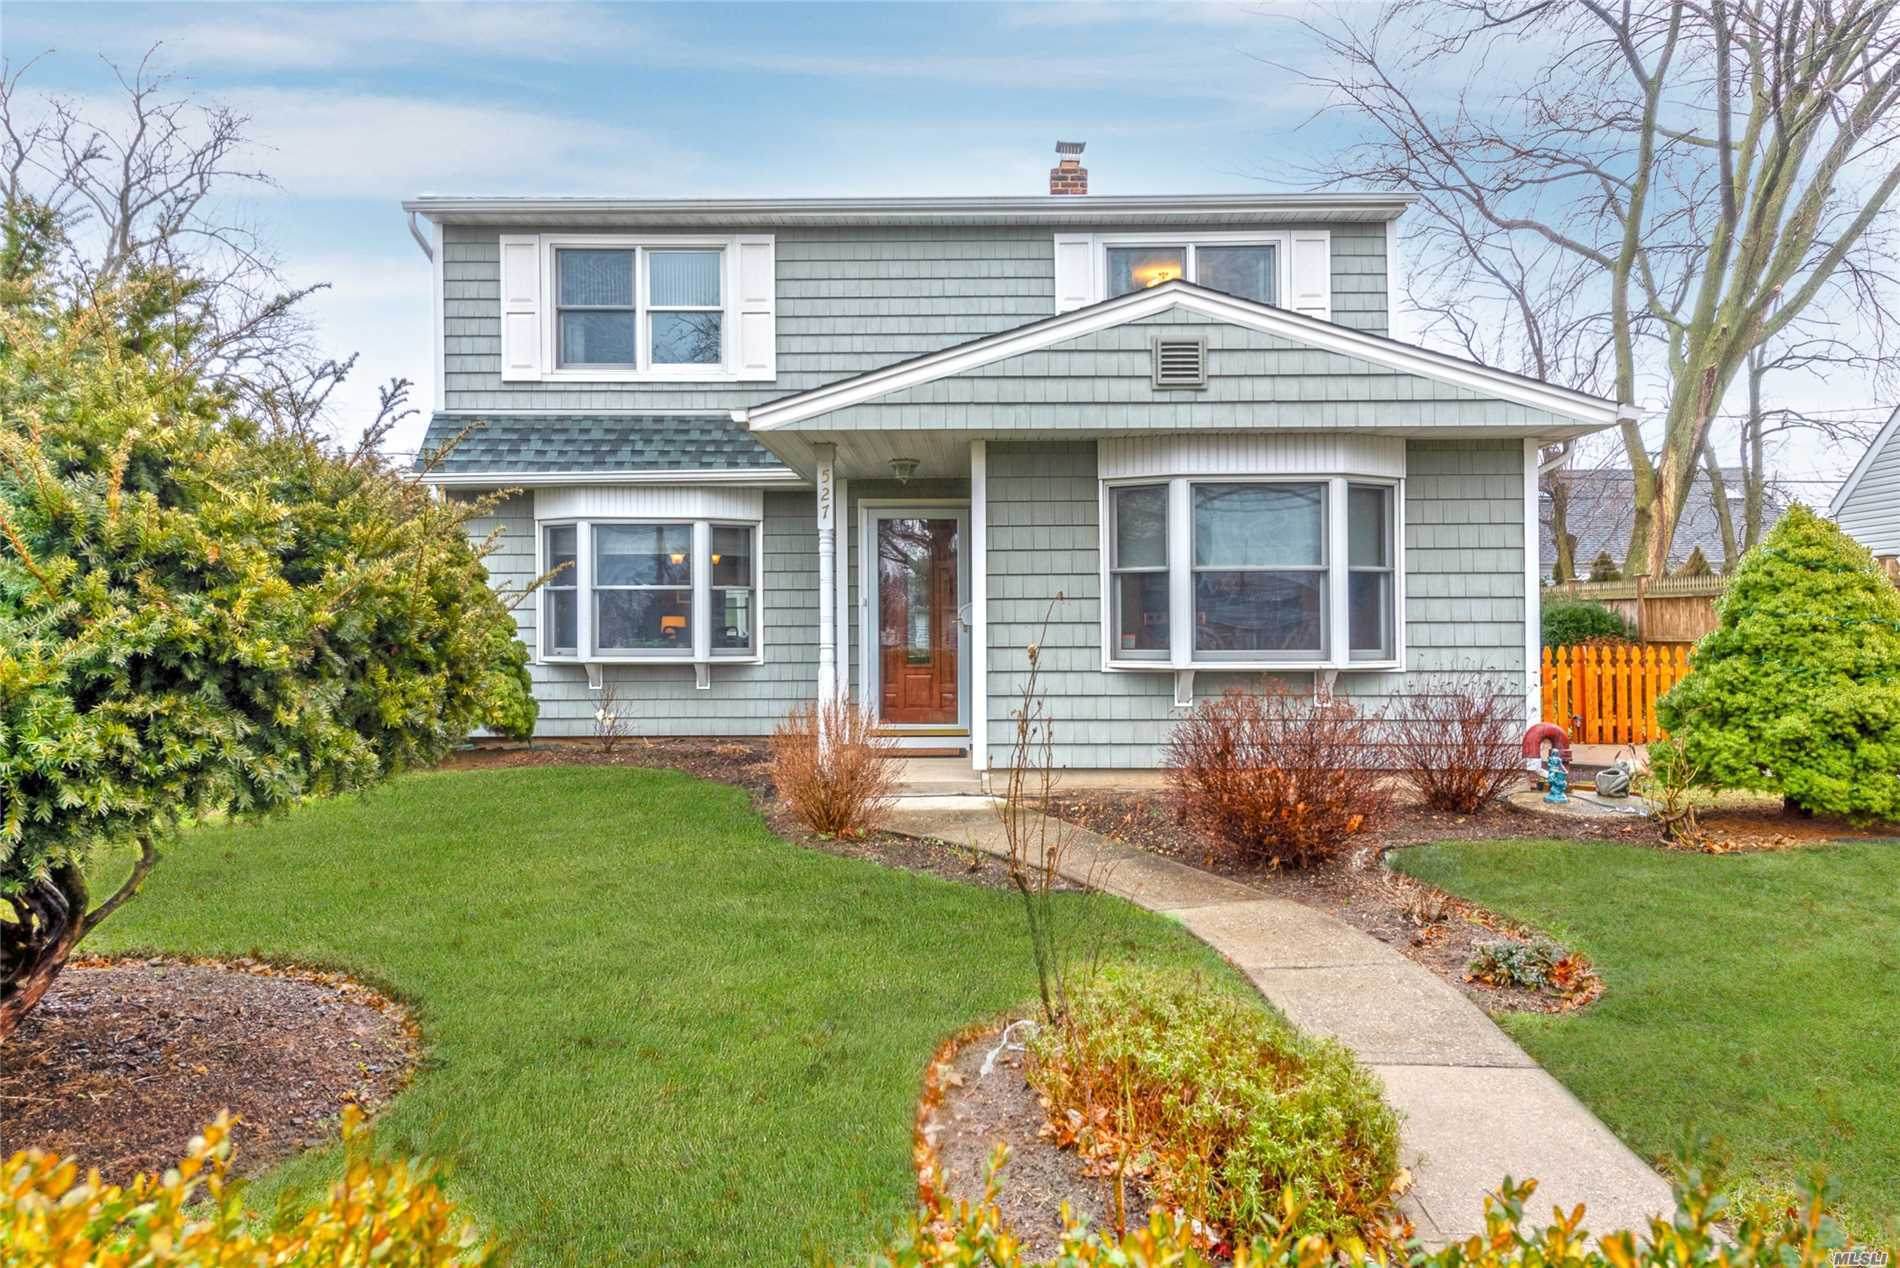 Fantastic 4 Bed, 1.5 Bath Colonial In Levittown For $449, 000. Boasting An Extended Eat In Kitchen W/ Granite Counters & Stainless Steel Appliances, Double Dormer, Updated Roof, Windows & Siding. Attention To Detail Throughout With Hardwood Floors, Crown Molding & Much More! A Rare Find In This Condition! Move Right In.